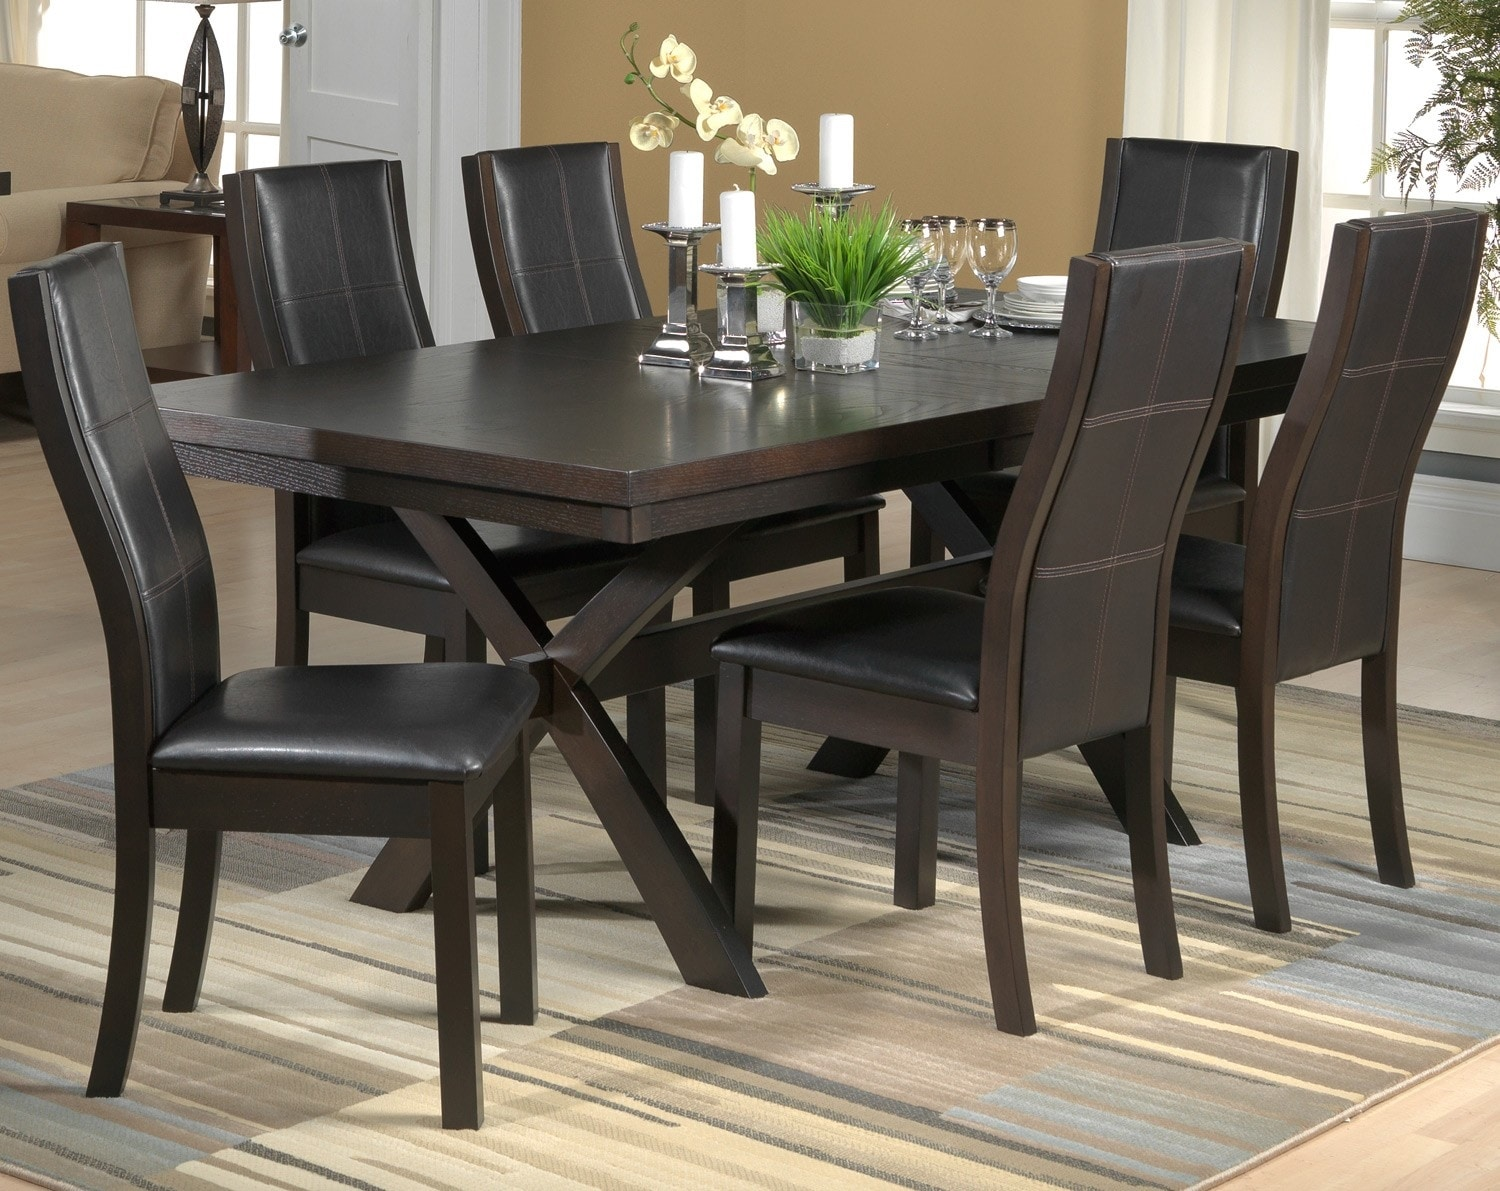 grethell 7 piece dining room set espresso leon 39 s